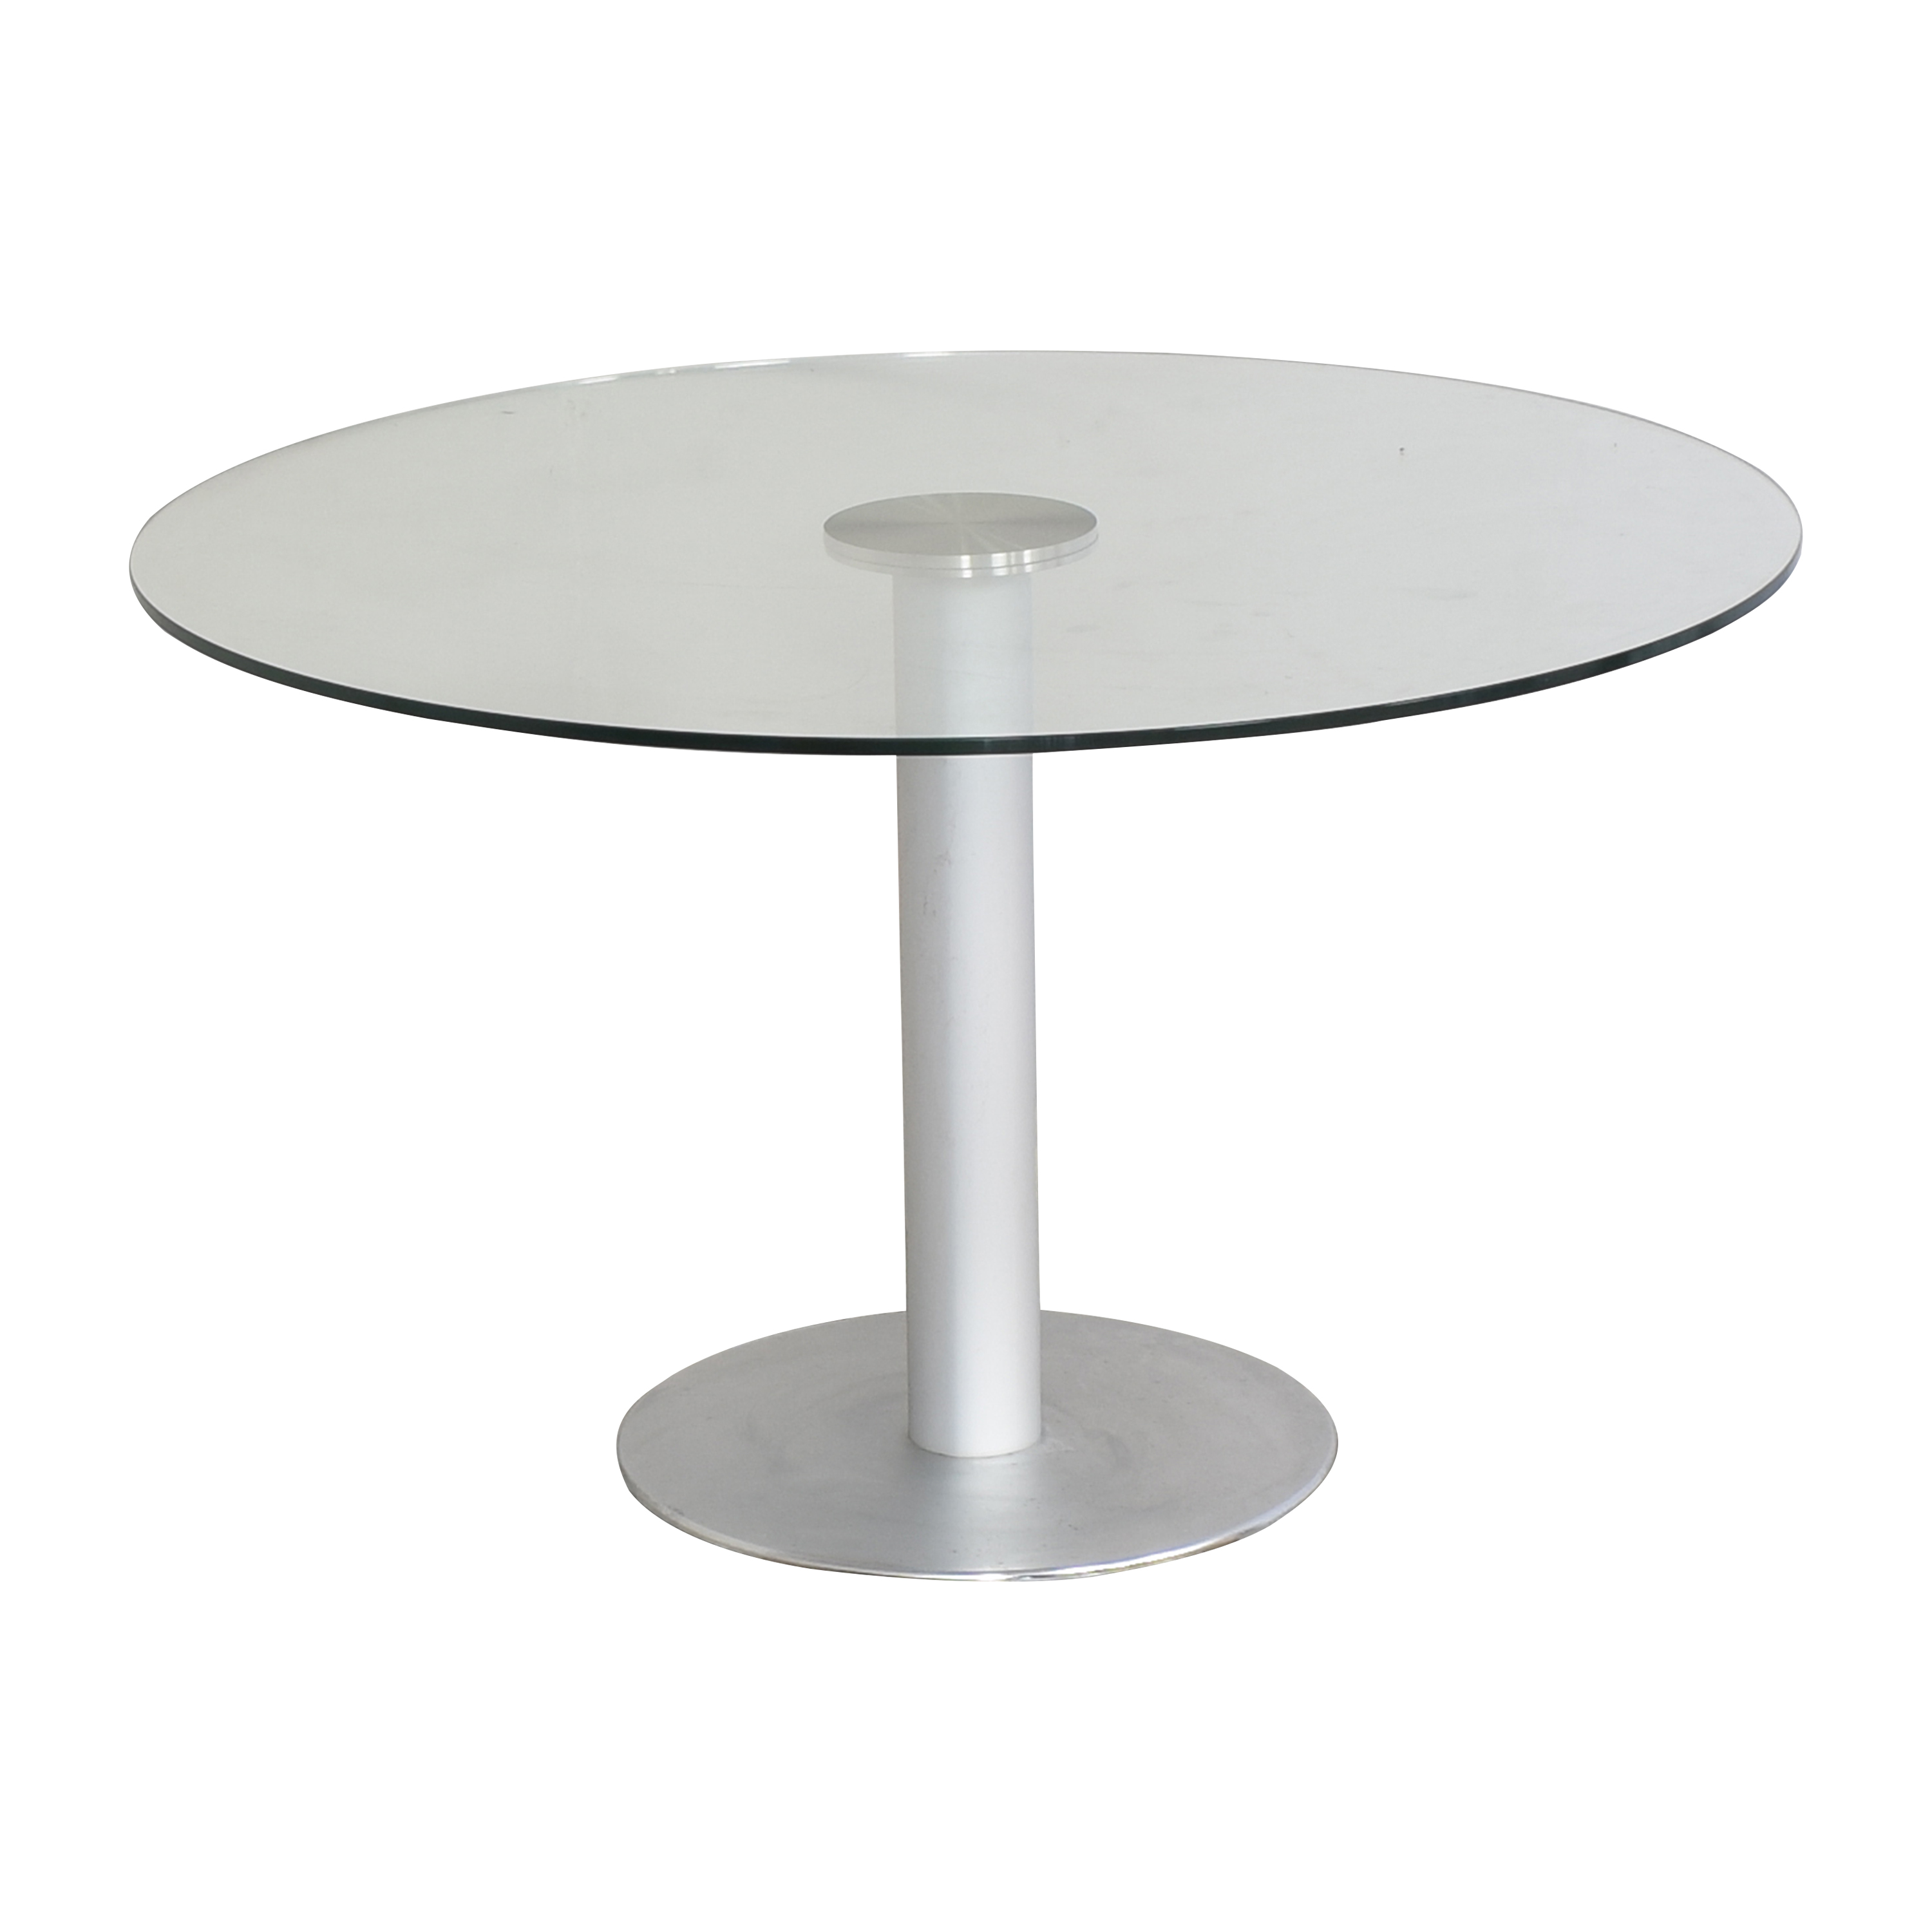 Design Within Reach Design Within Reach Zero Table for sale